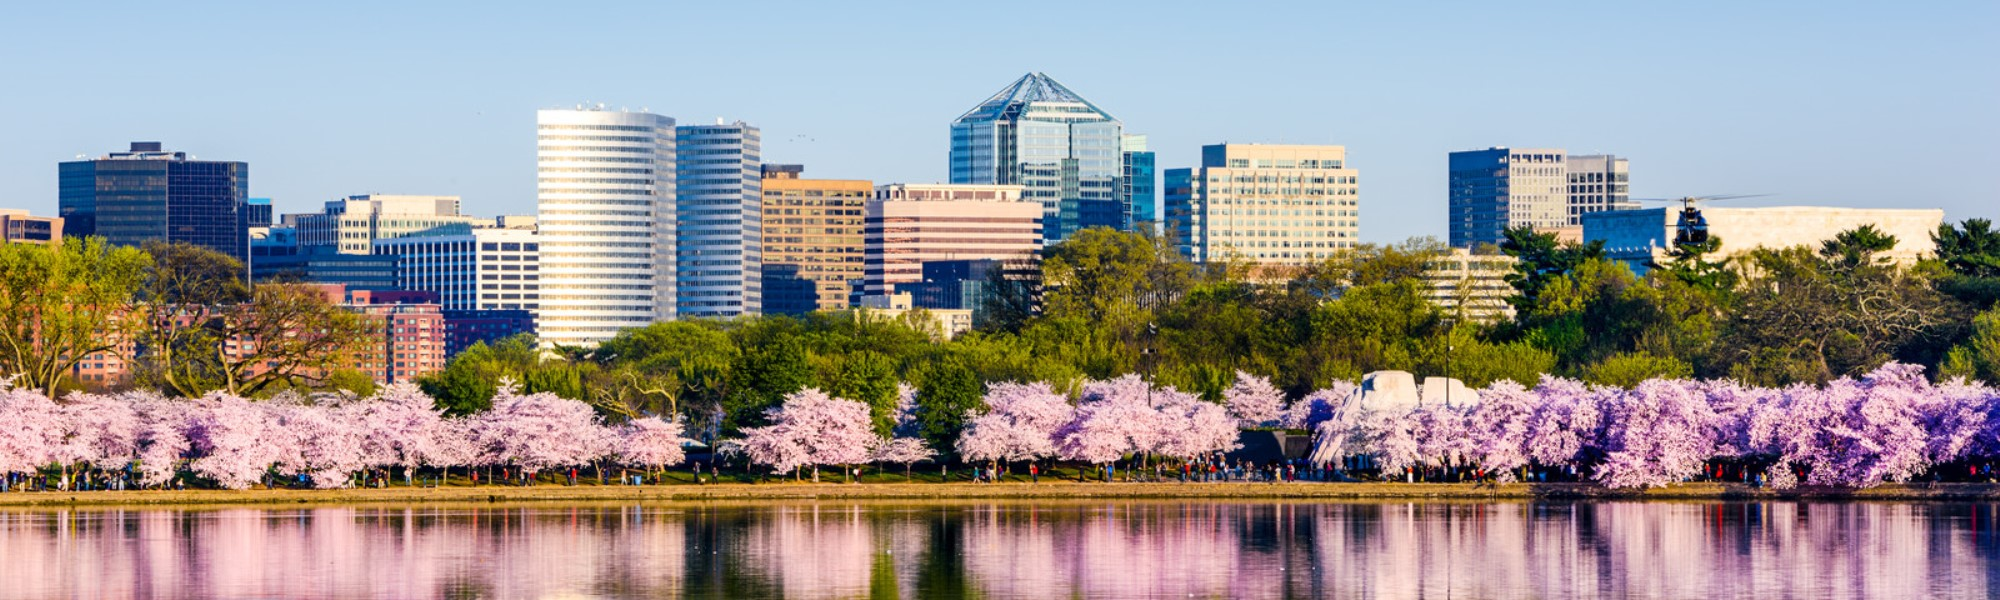 rosslyn-dc_canstockphoto27018657 2000x600